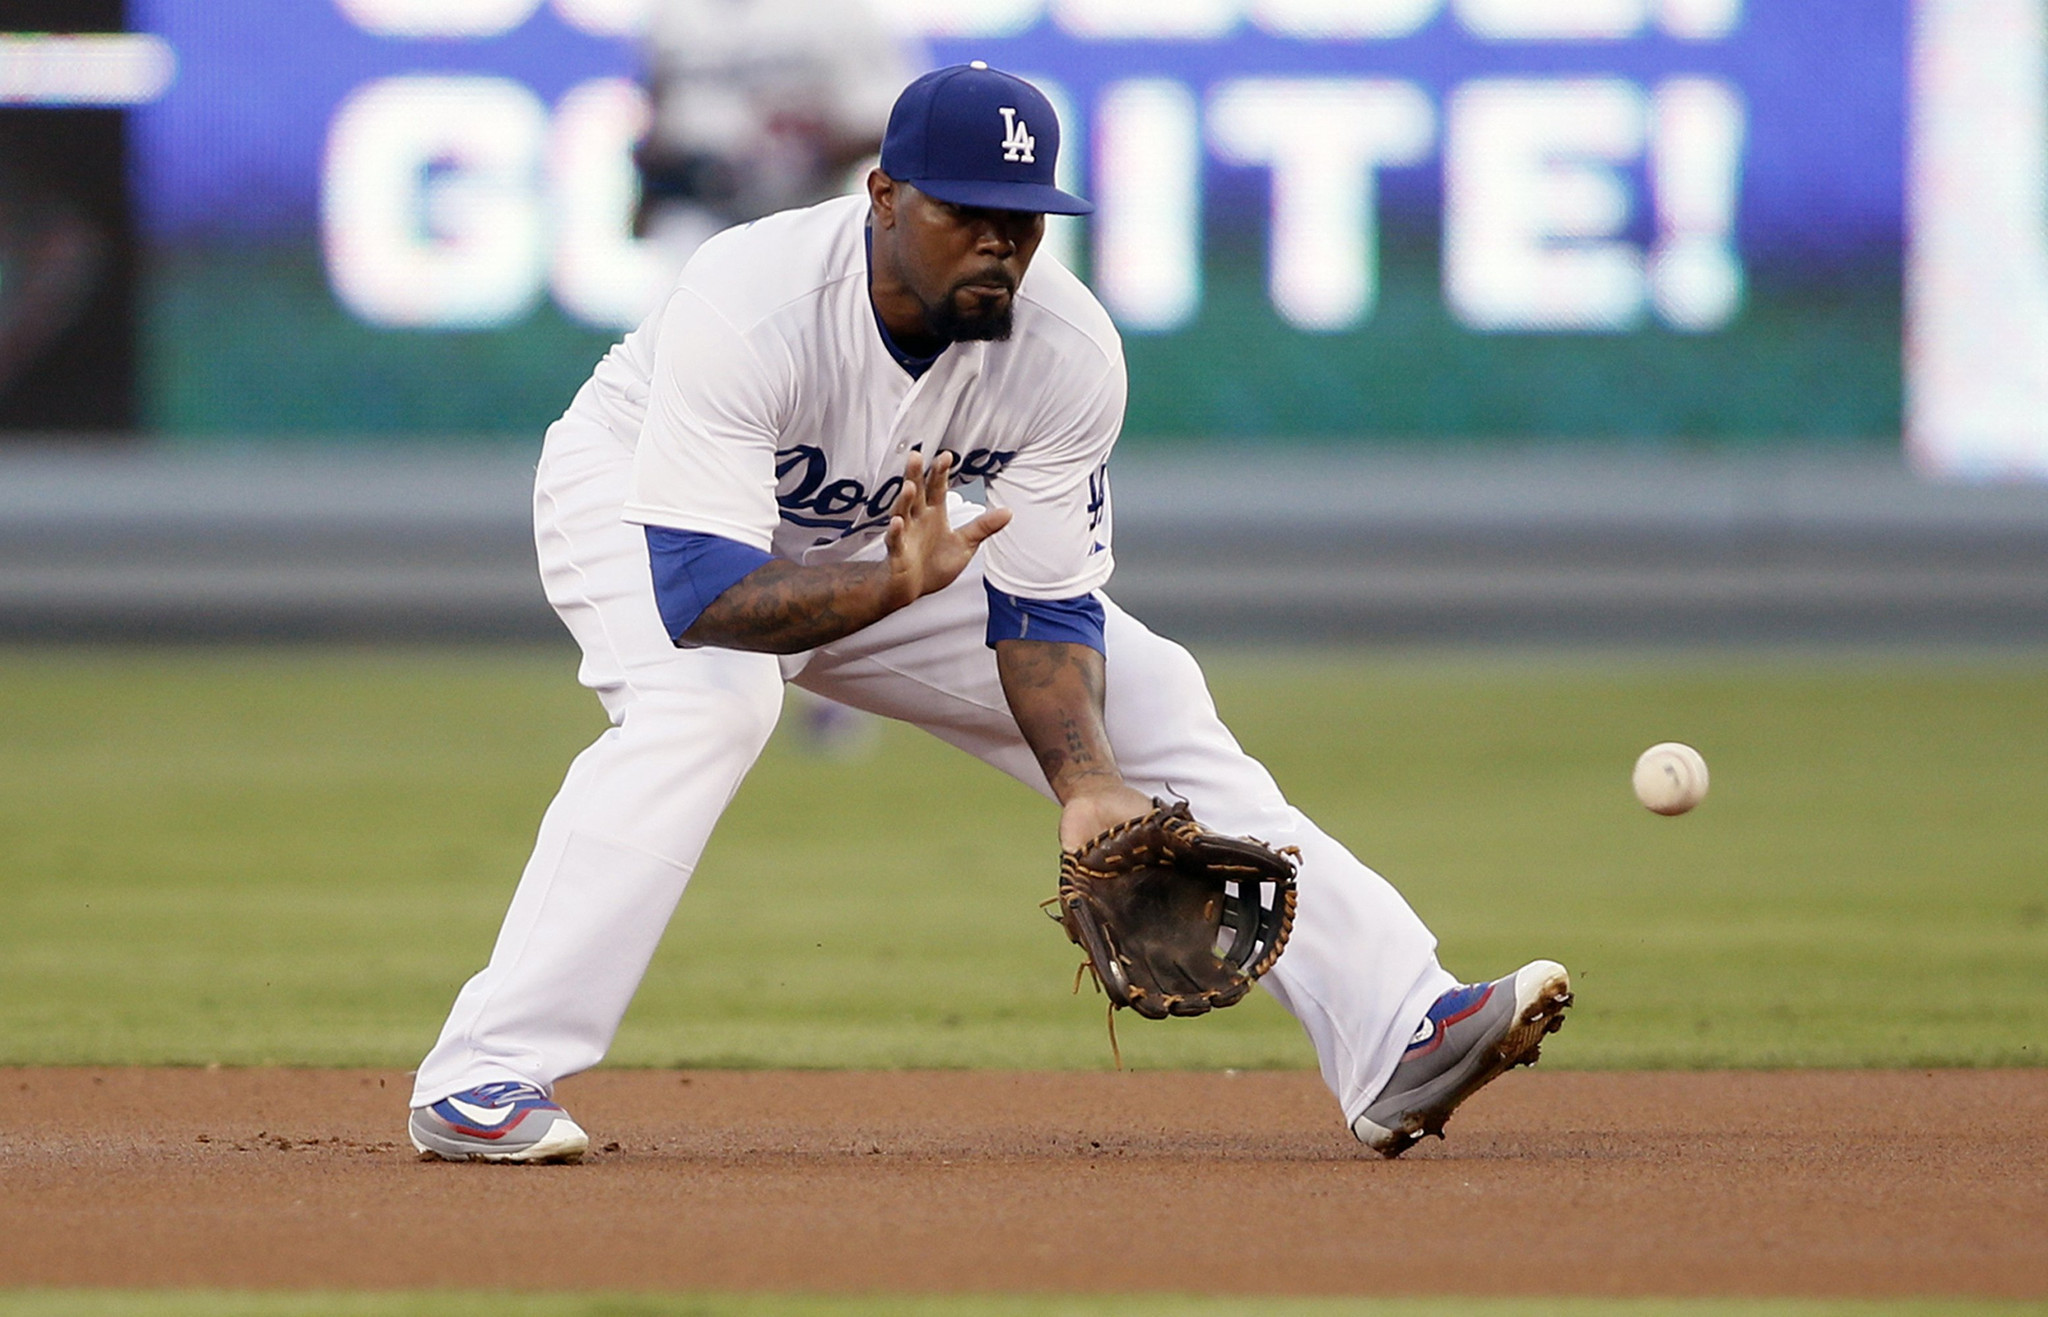 La-sp-0131-dodgers-notes-20160131